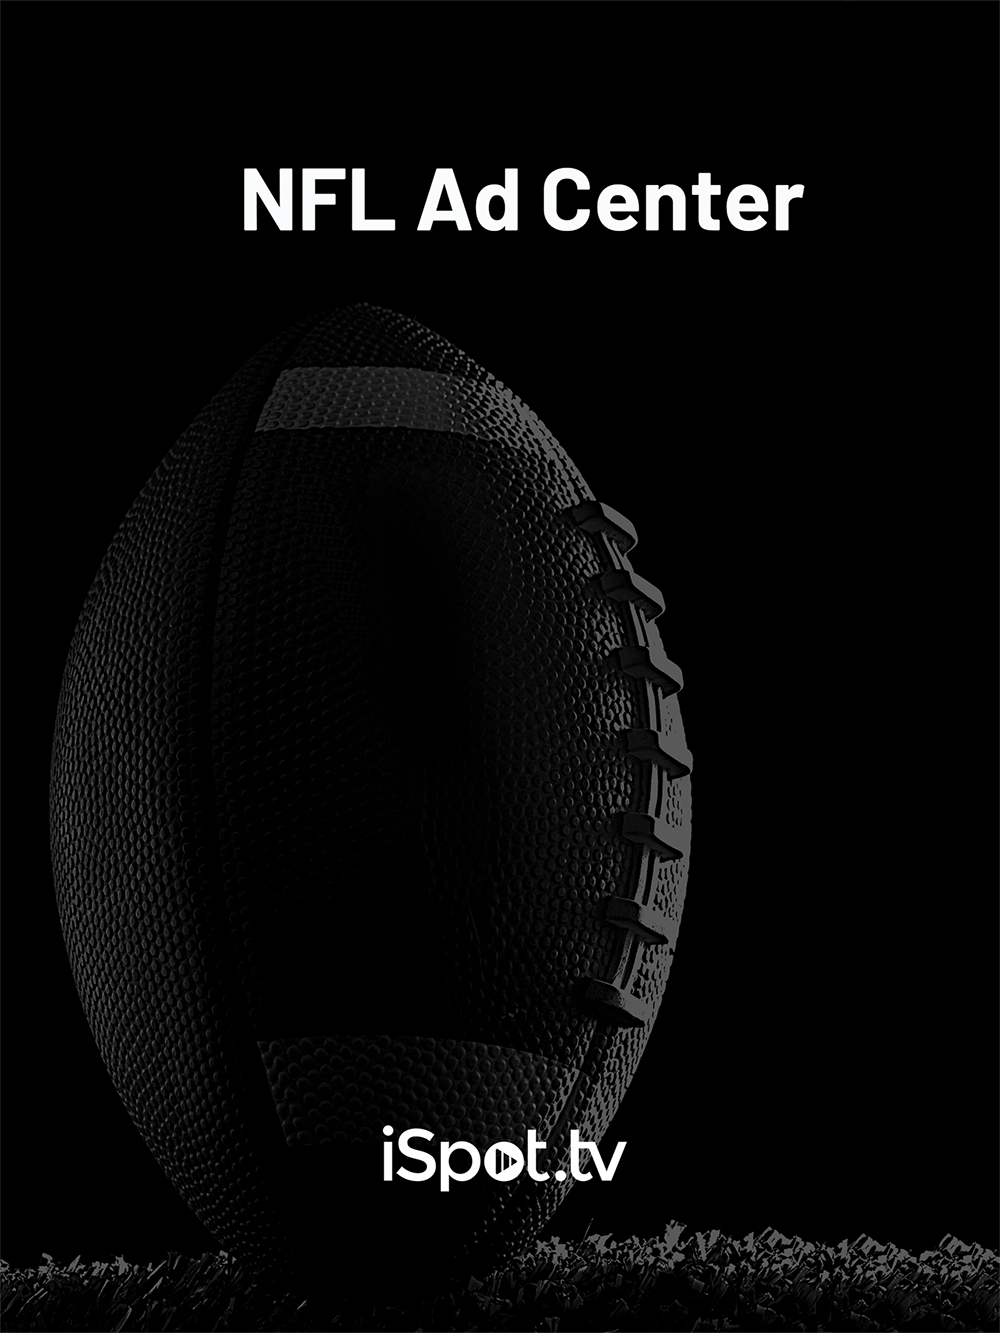 NFL Ad Center